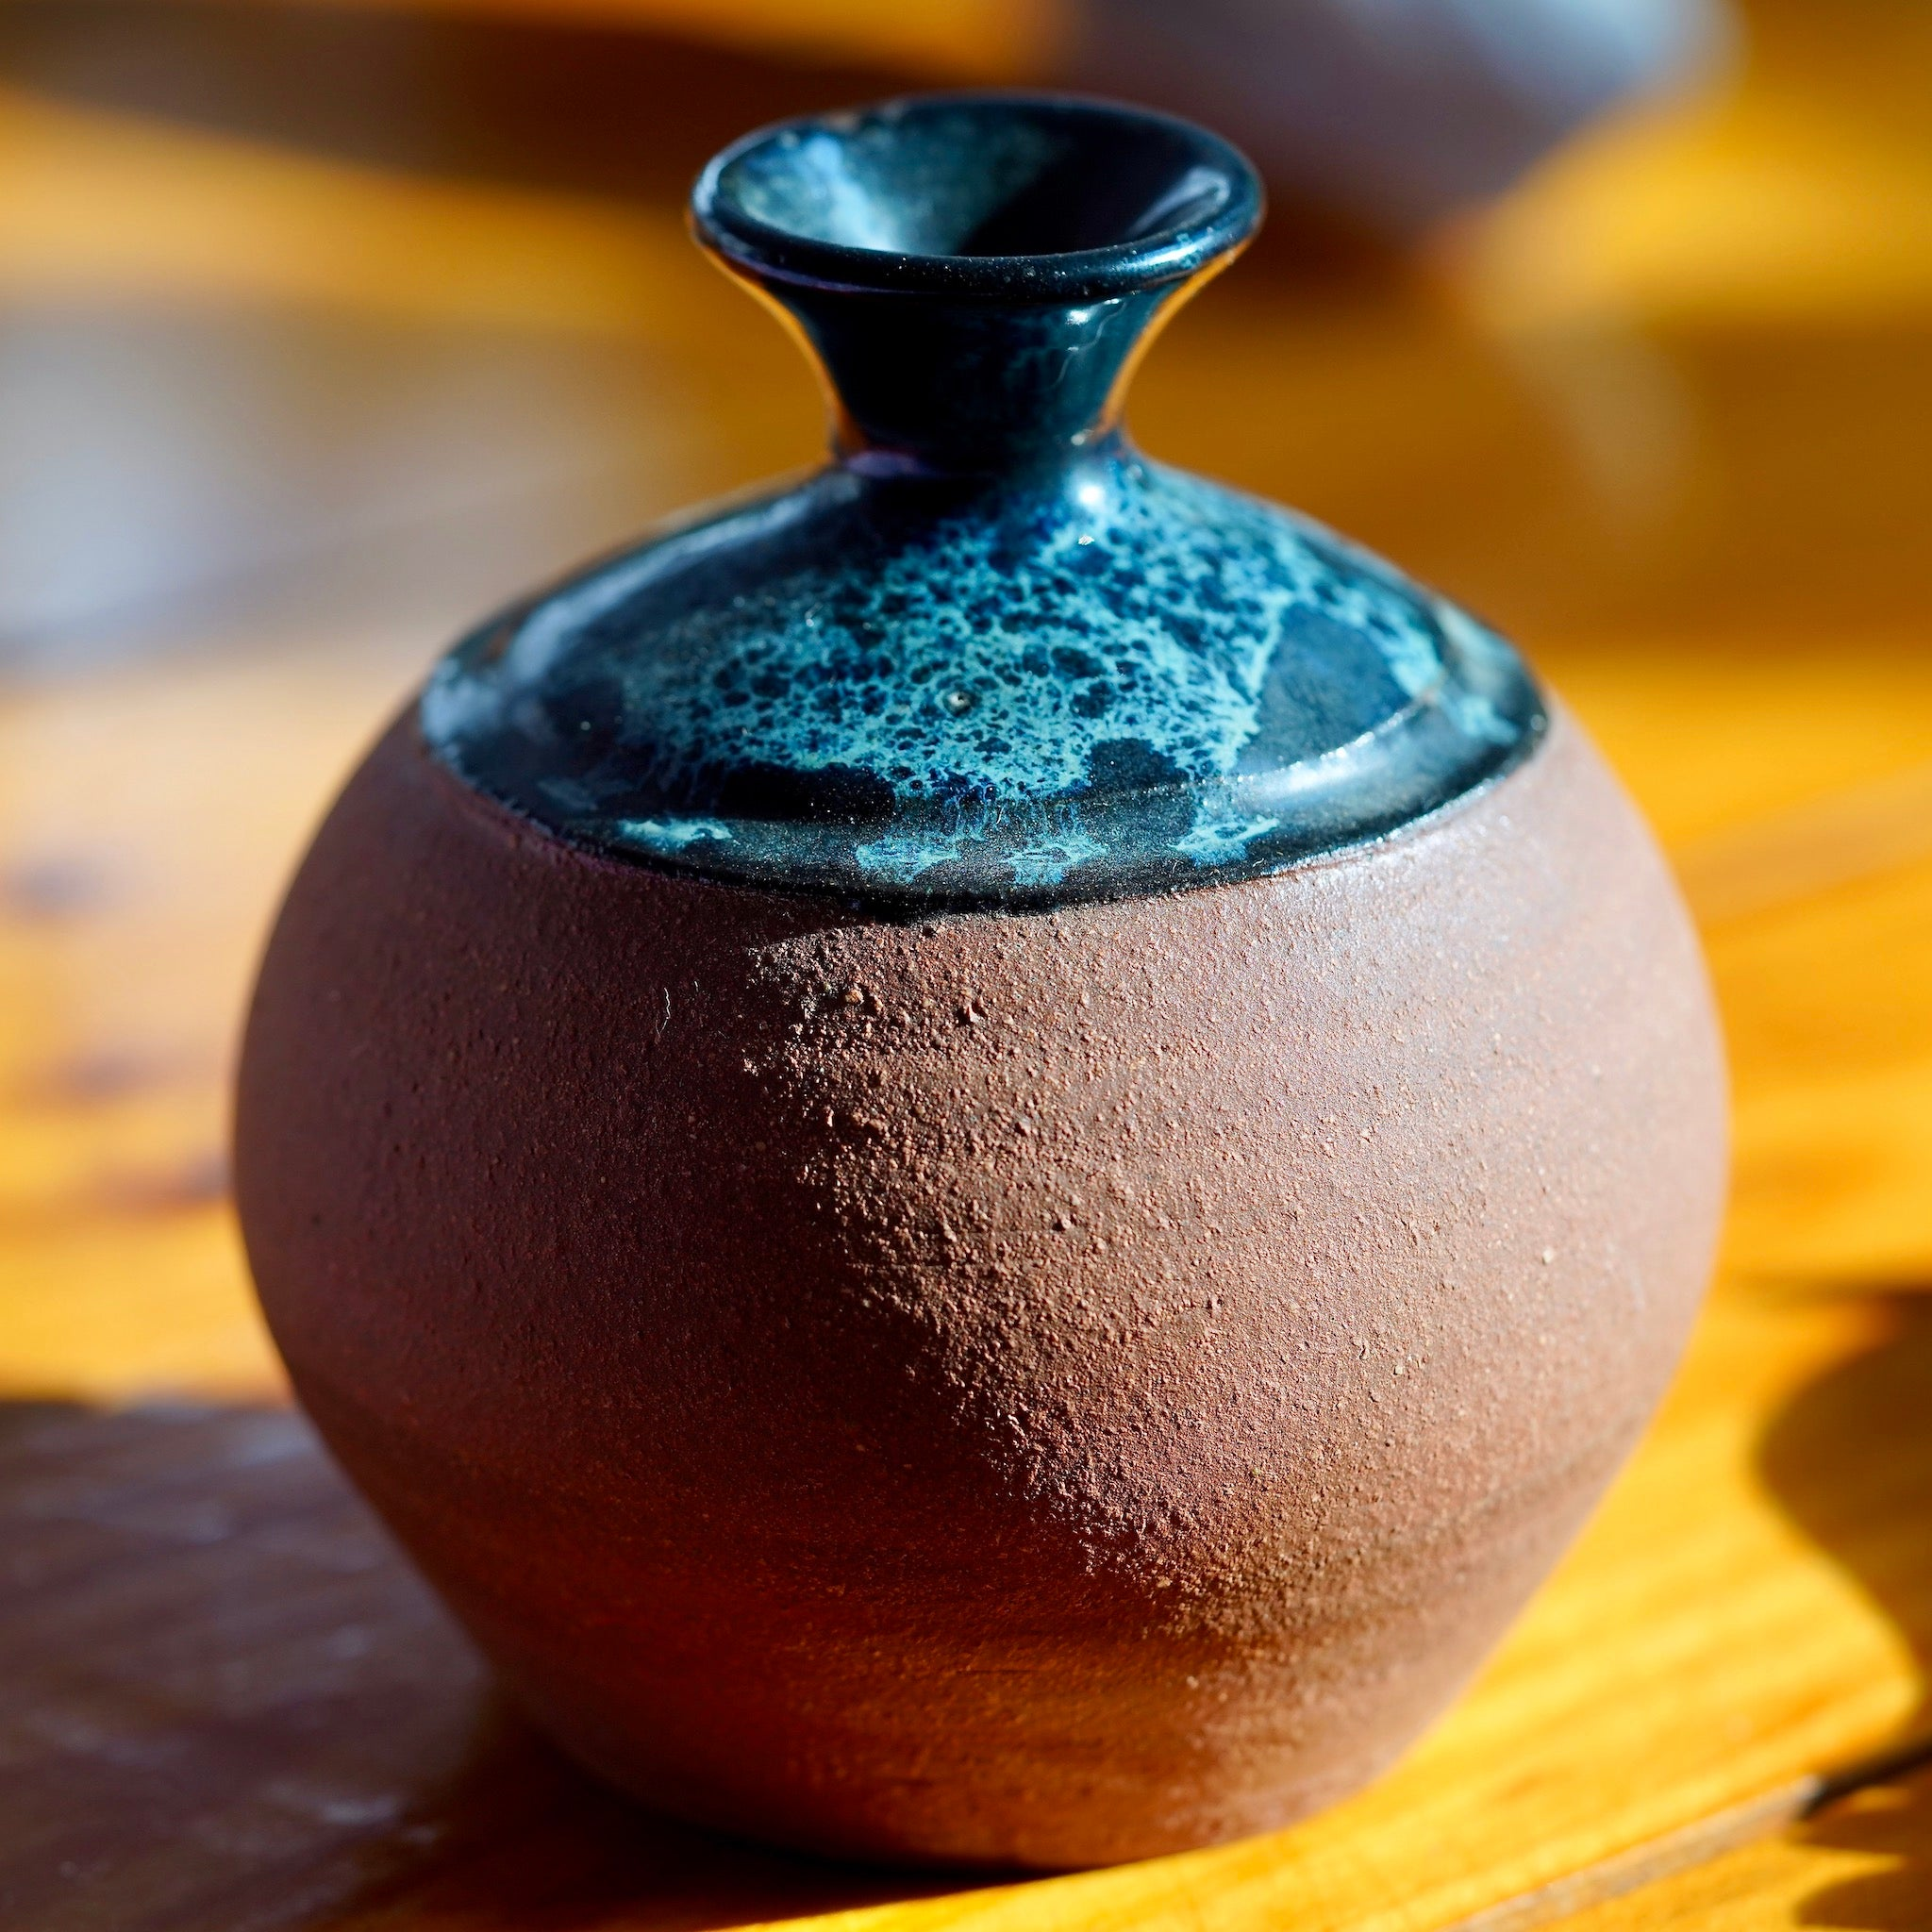 Handmade brown clay ceramic bud vase with black, blue and white nebula glaze on top, displayed on a light wood floor